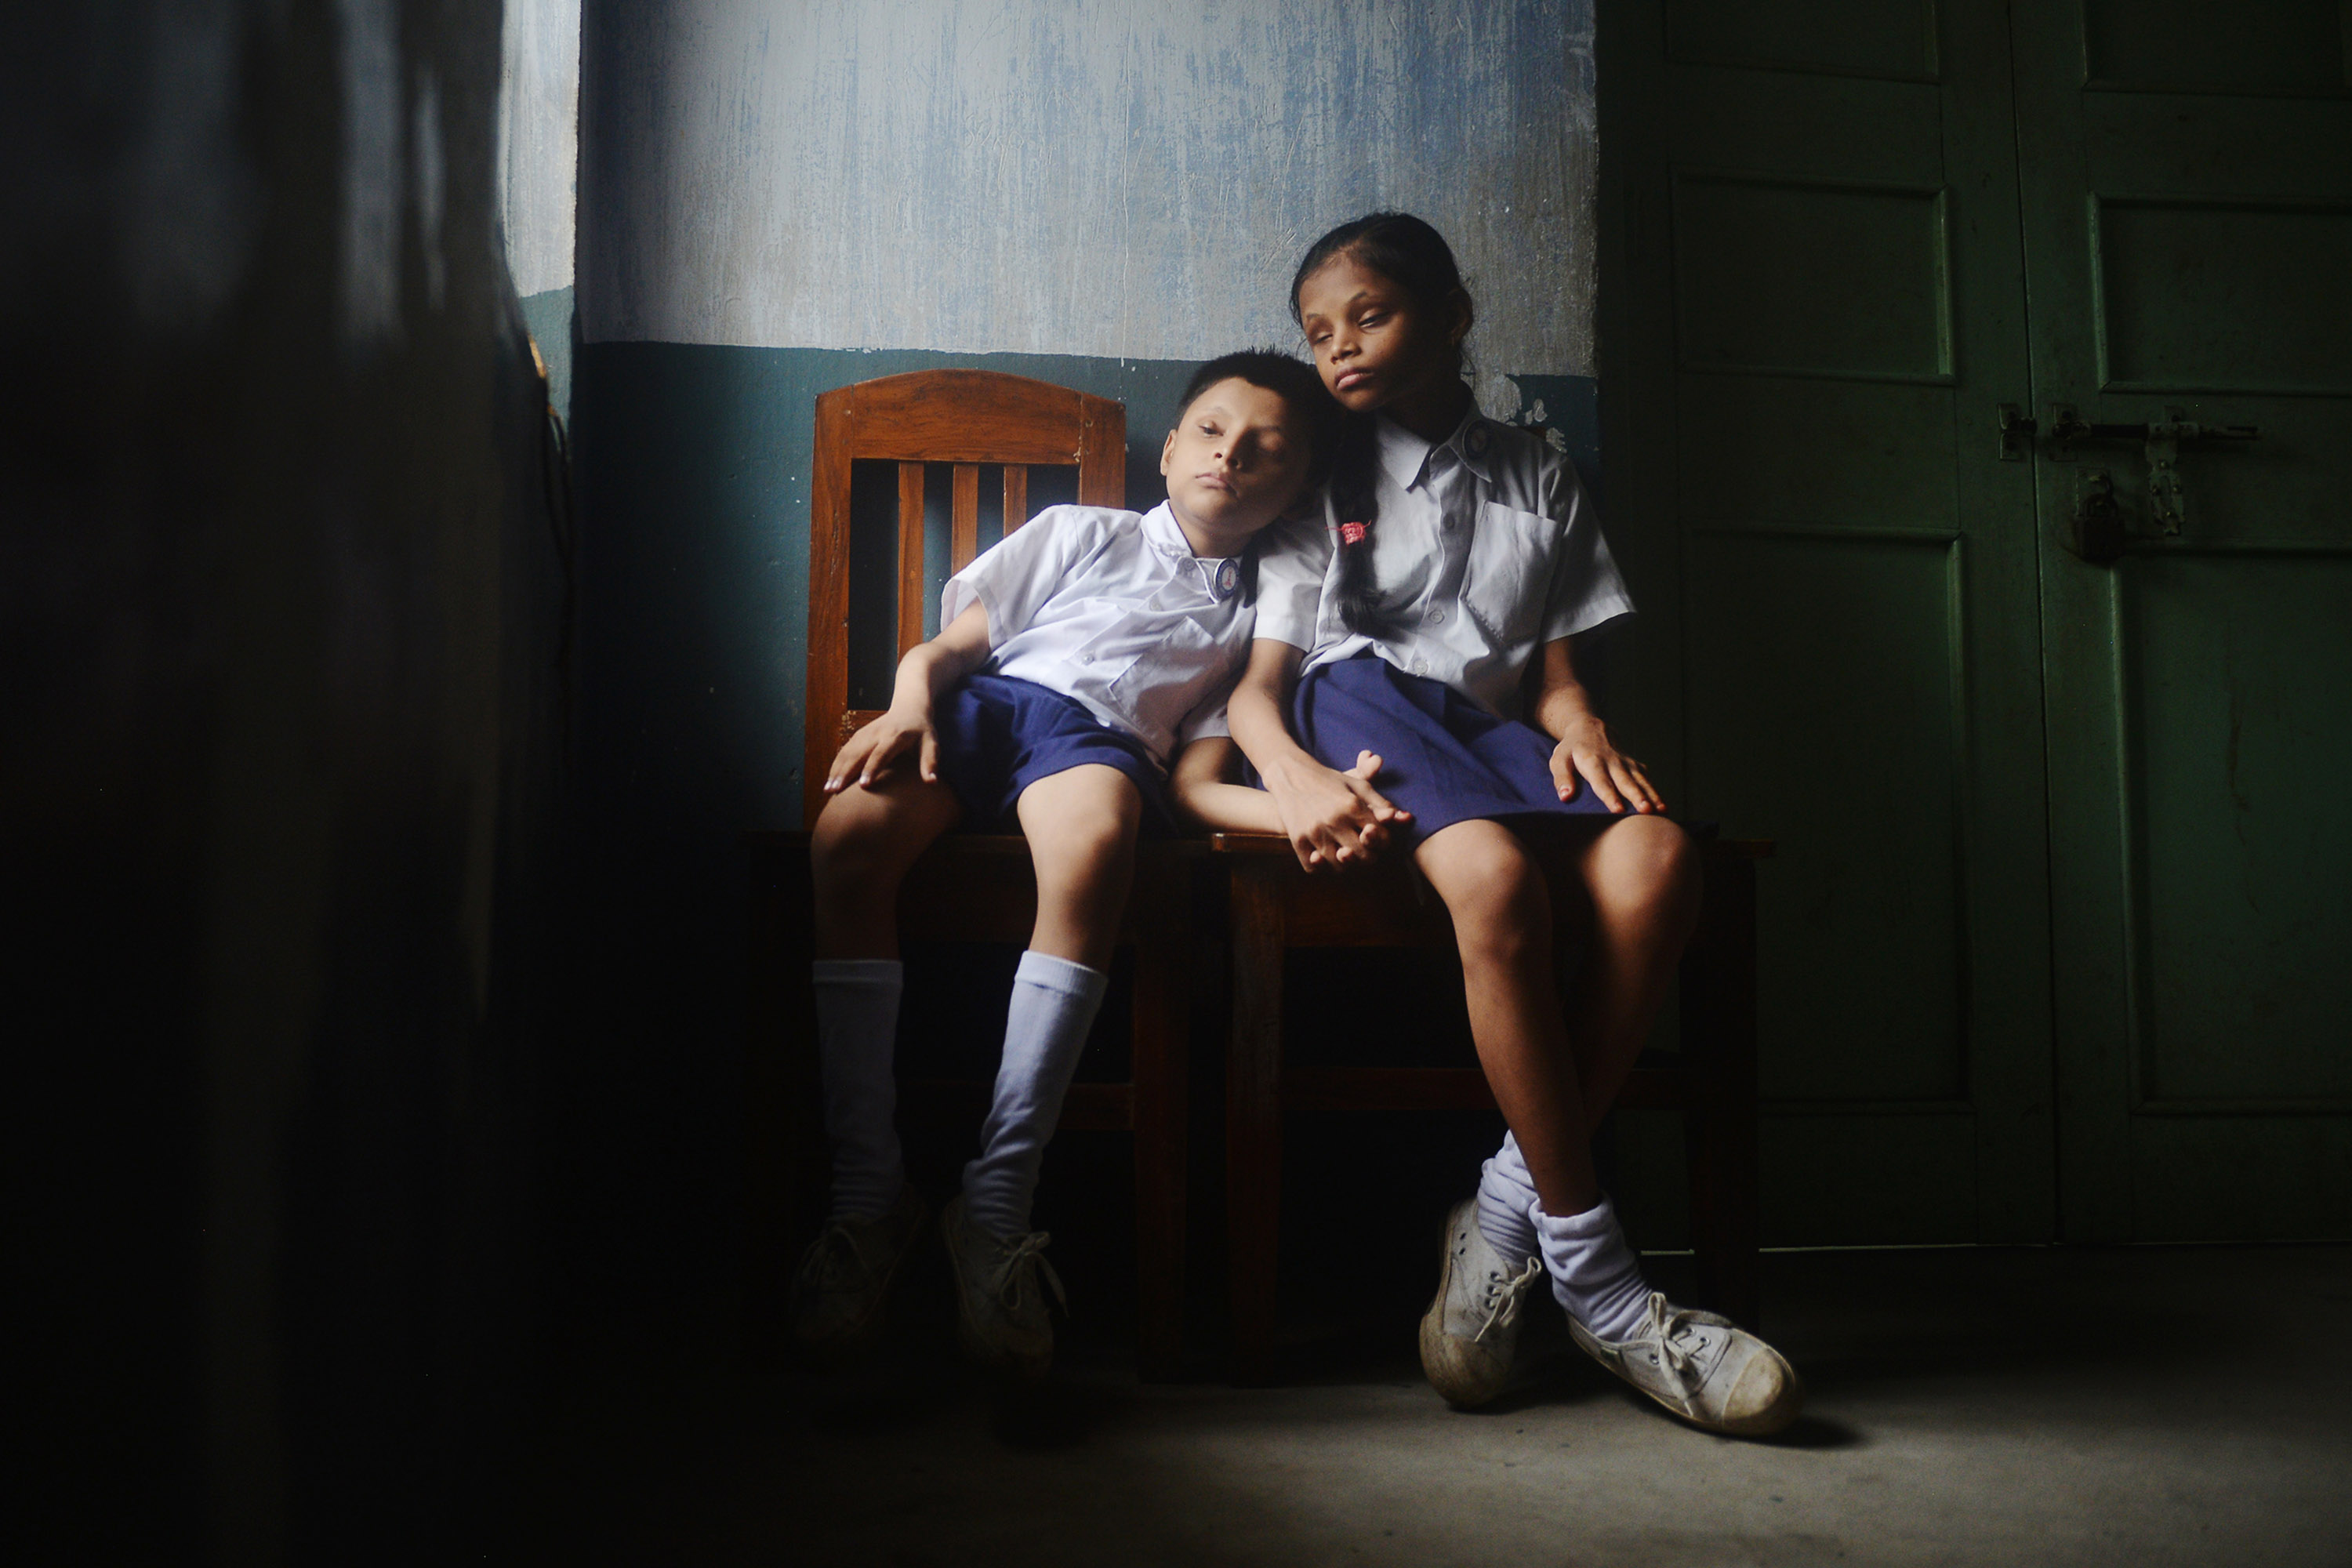 Siblings wait for their parents to take them home from school. Students from out of town stay in the hostels, which are well-equipped for hosting the visually impaired. Credit: Sutirtha Chatterjee